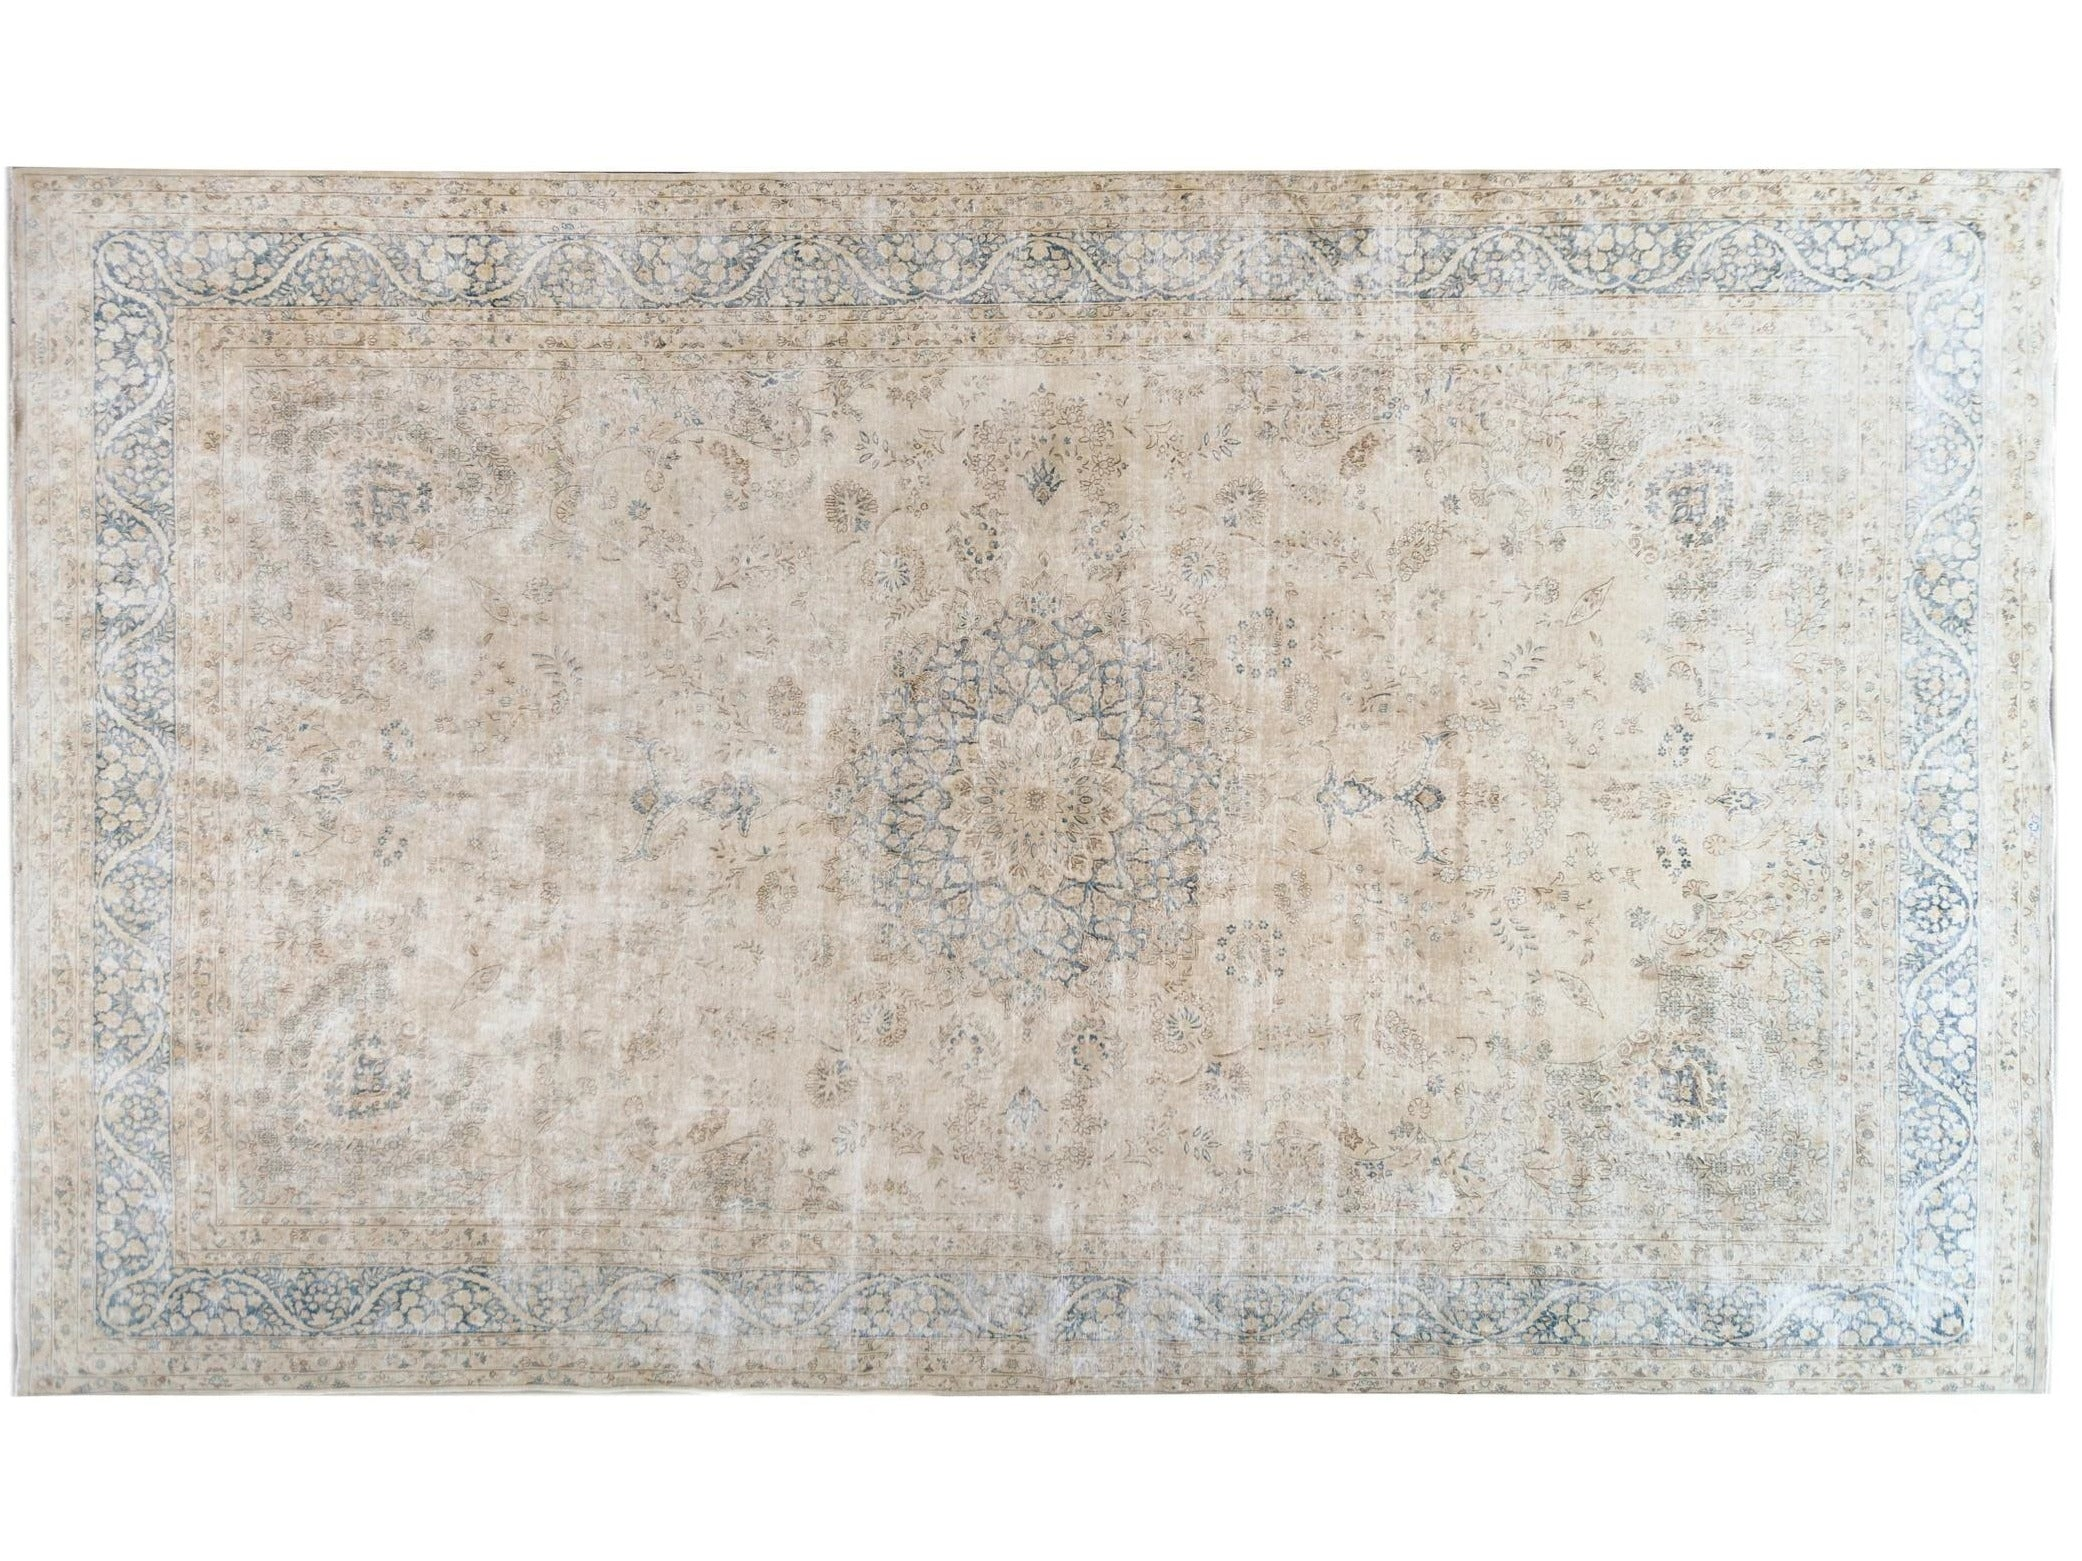 Early 20th Century Antique Oversize Kerman Wool Rug